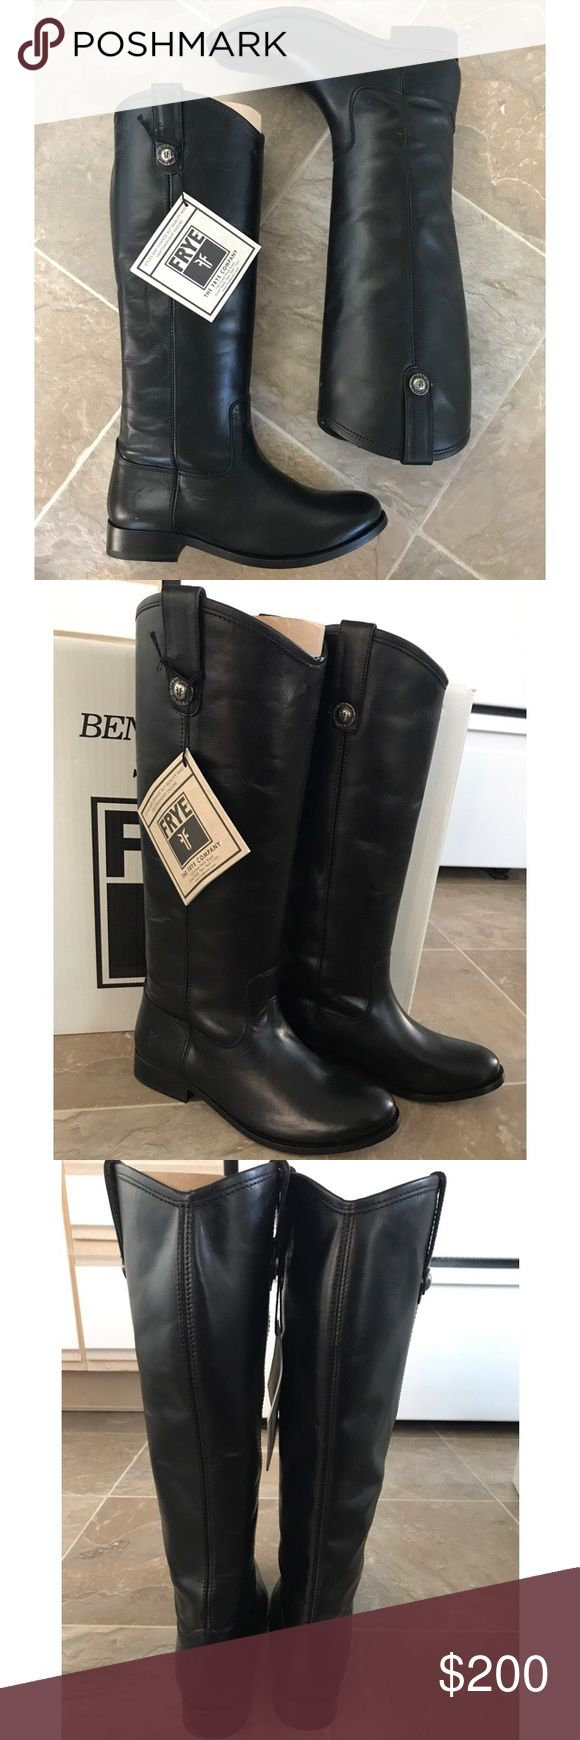 Frye 'Melissa Button' Leather Riding Boot sz 6 NIB Frye 'Melissa Button' (Black) Leather Riding Boot sz 6 NIB ✔️ These are brand new, with box. The box may or may not be included depending on the size of the shipping box. Frye Shoes